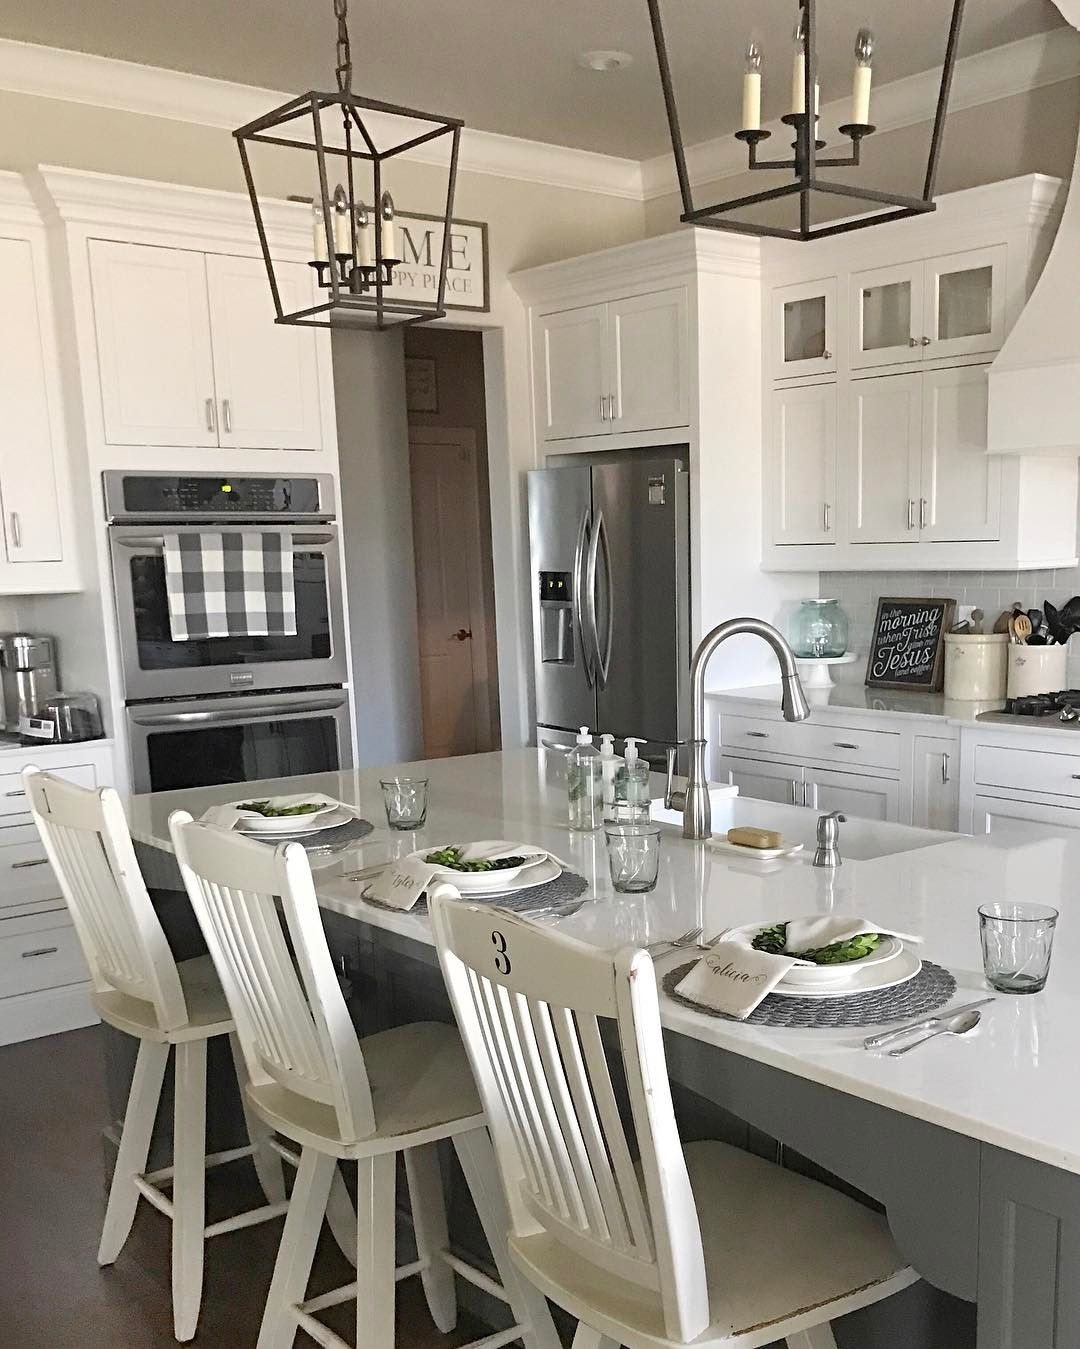 Grey Kitchen And Living Room: The Wall Color Throughout The Main Entry And Living Areas Is Called Agreeable Gray By Sherwin